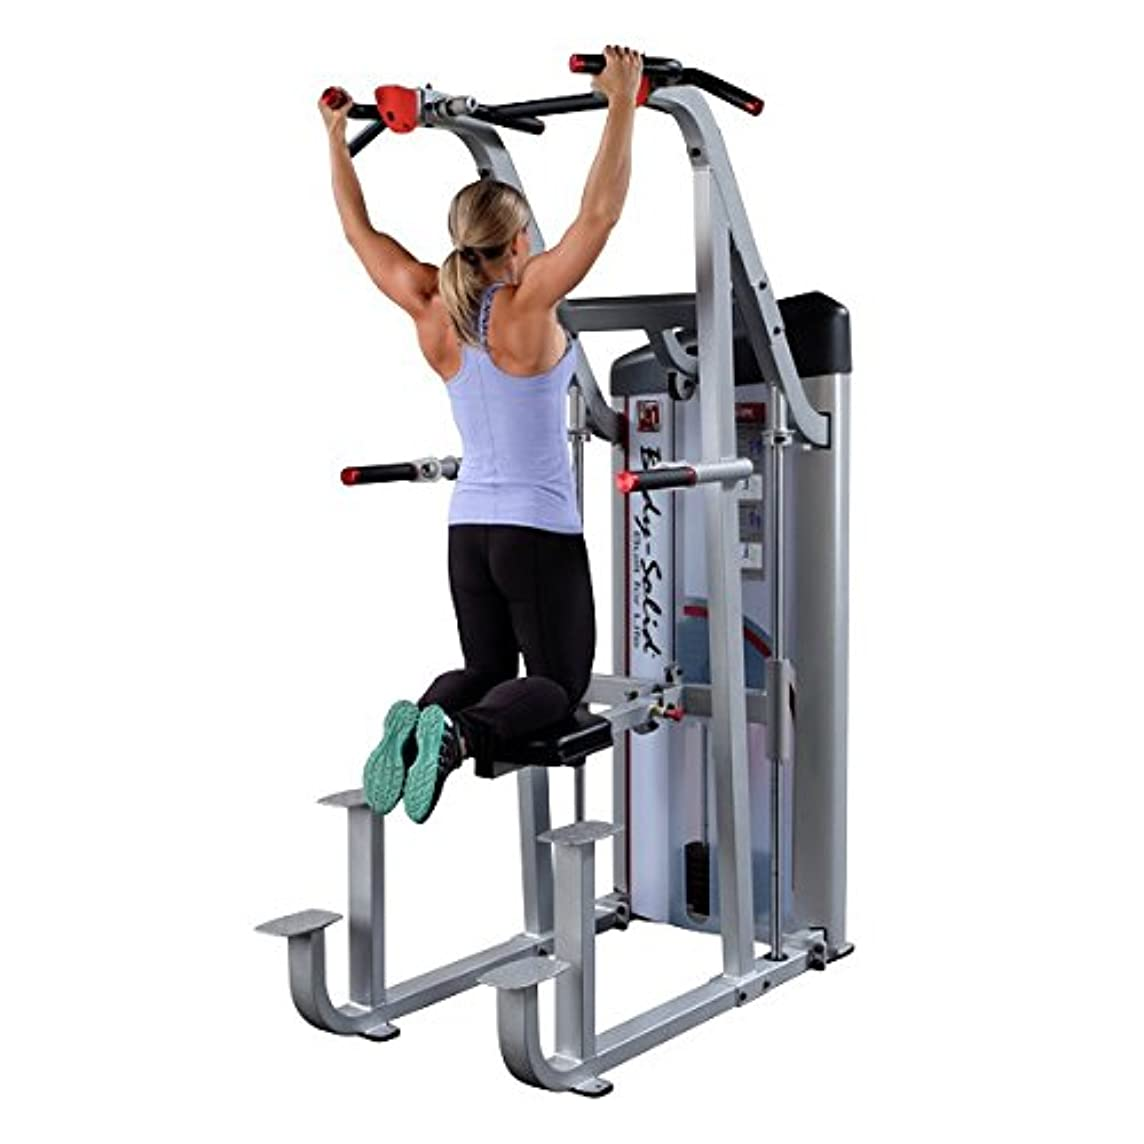 Body-Solid S2ACD Pro ClubLine Series II Weight Assisted Chin Dip Machine with 235 lb Counterbalanced Weight Stack and Rock Climbing Grips